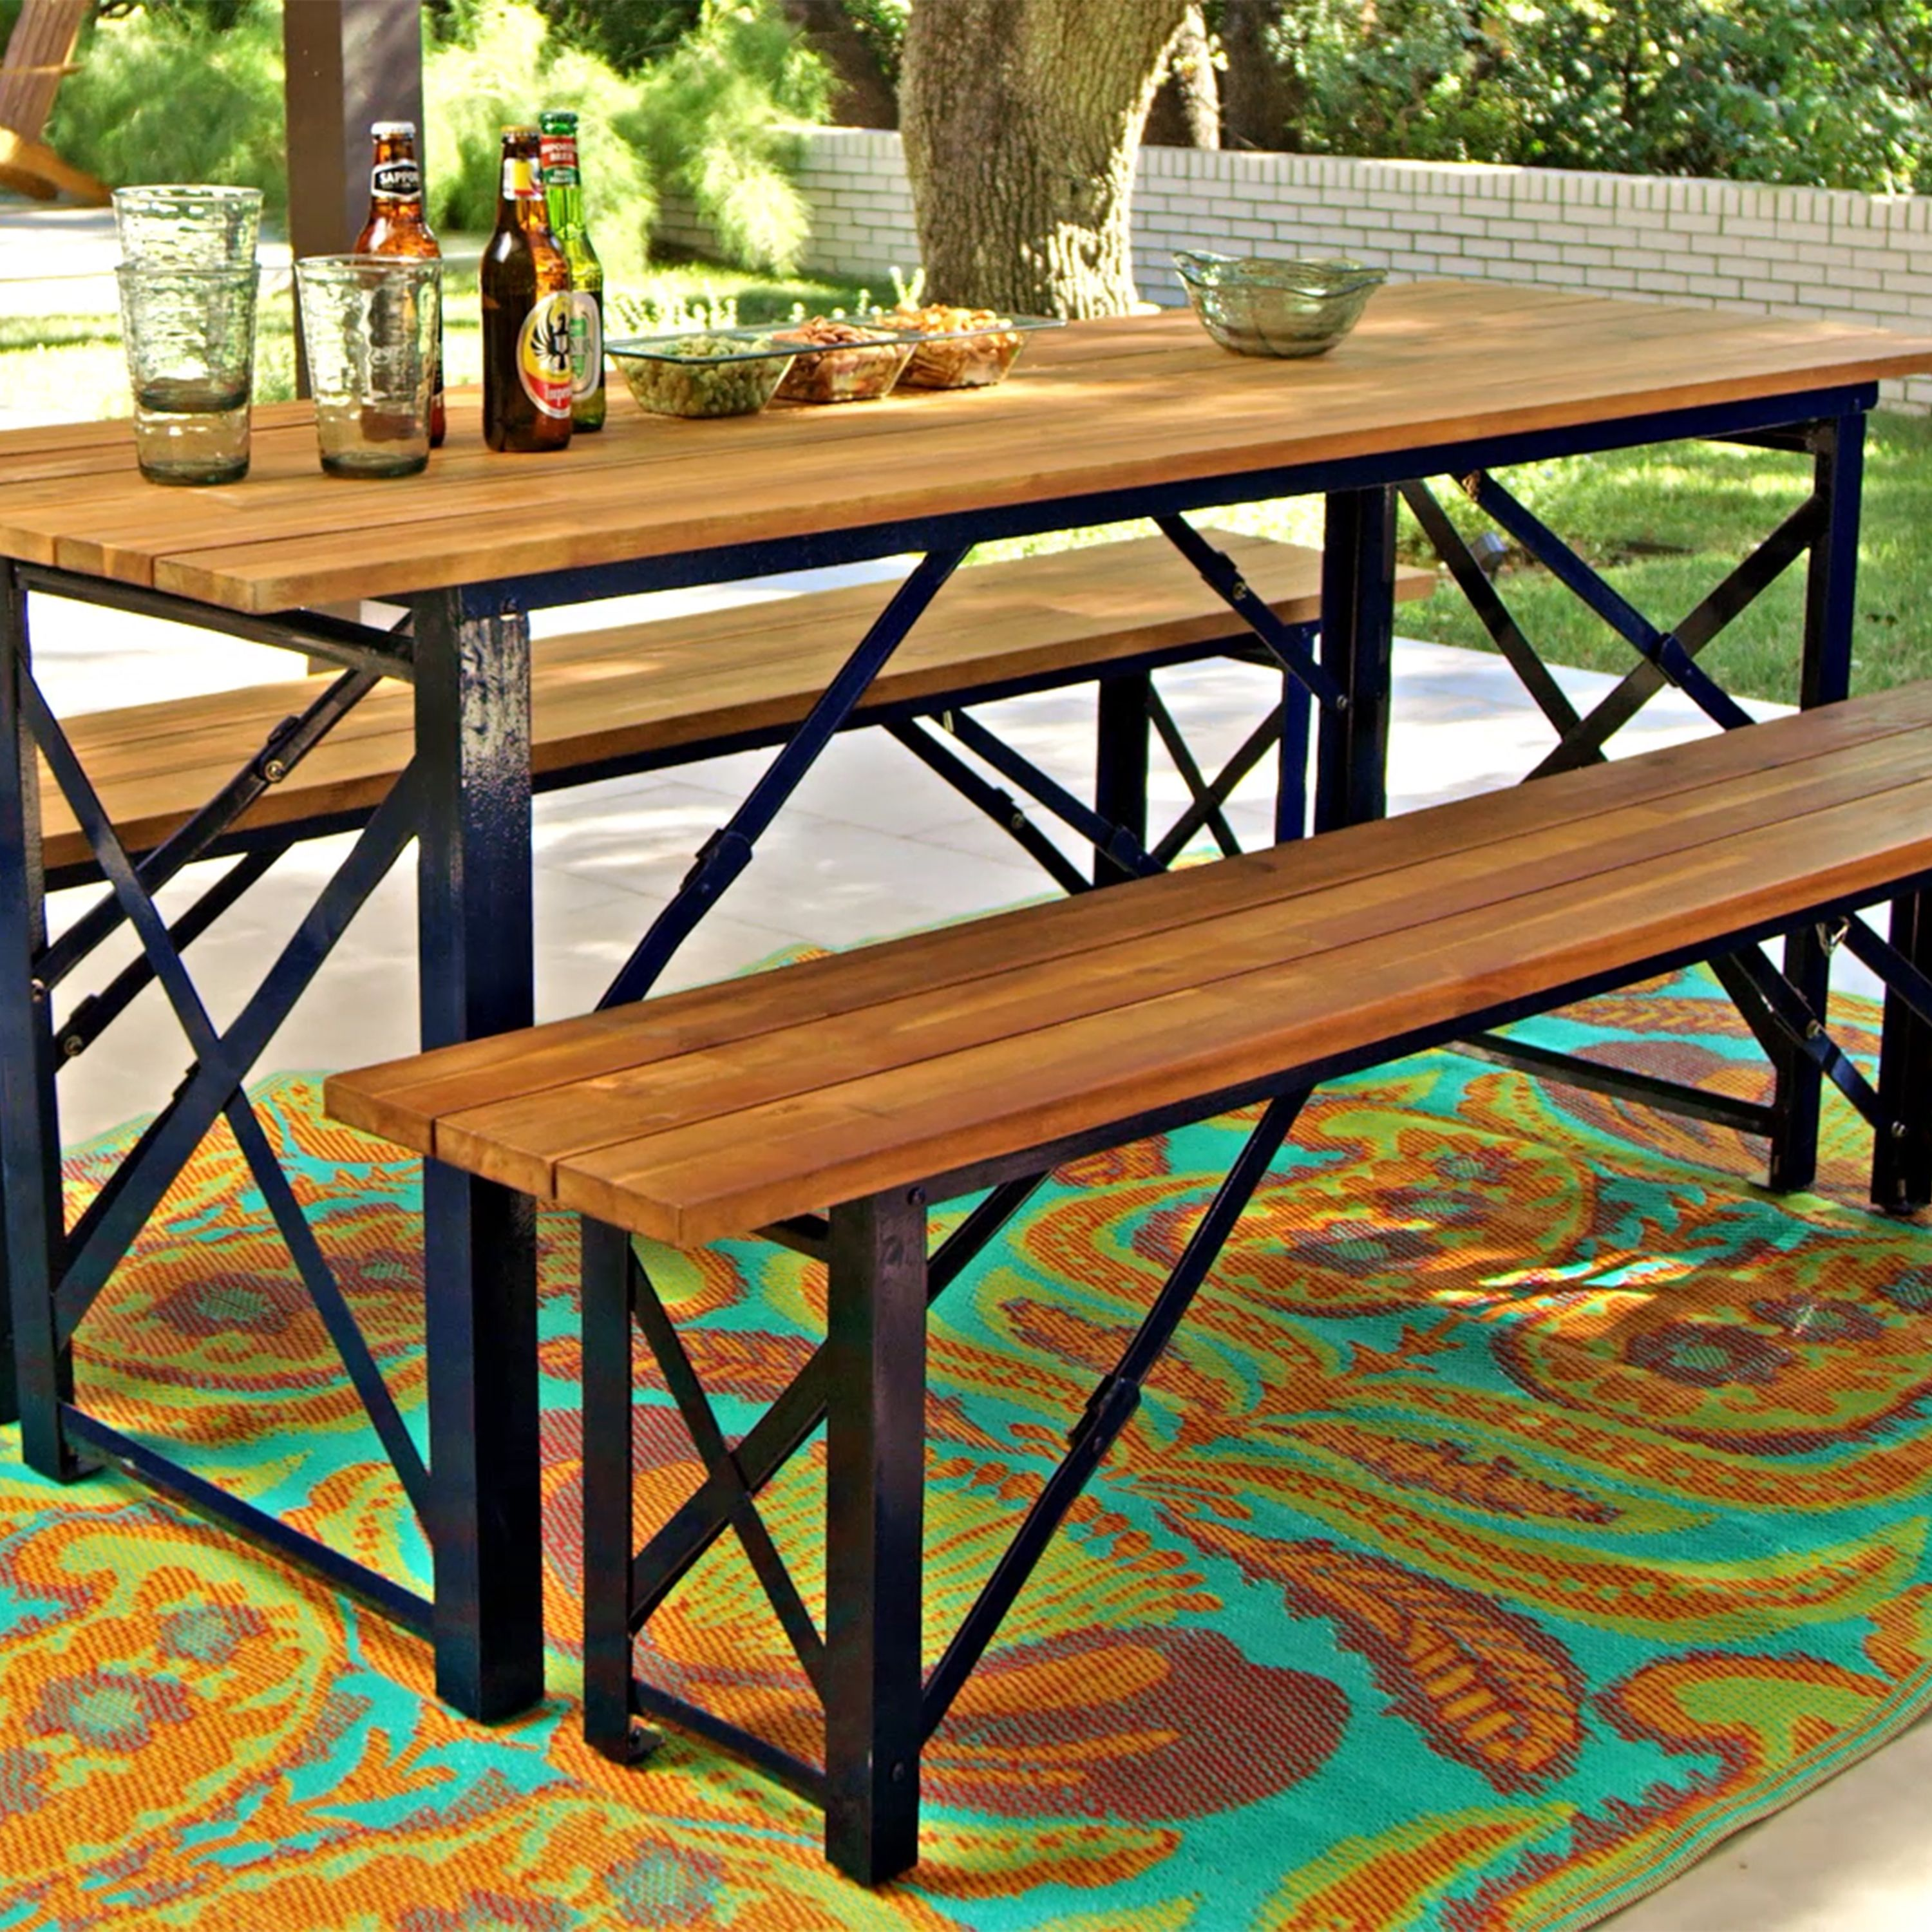 Inspired By The Beer Gardens Of Southern Germany Our Dining Table Creates A Casual Outdoor